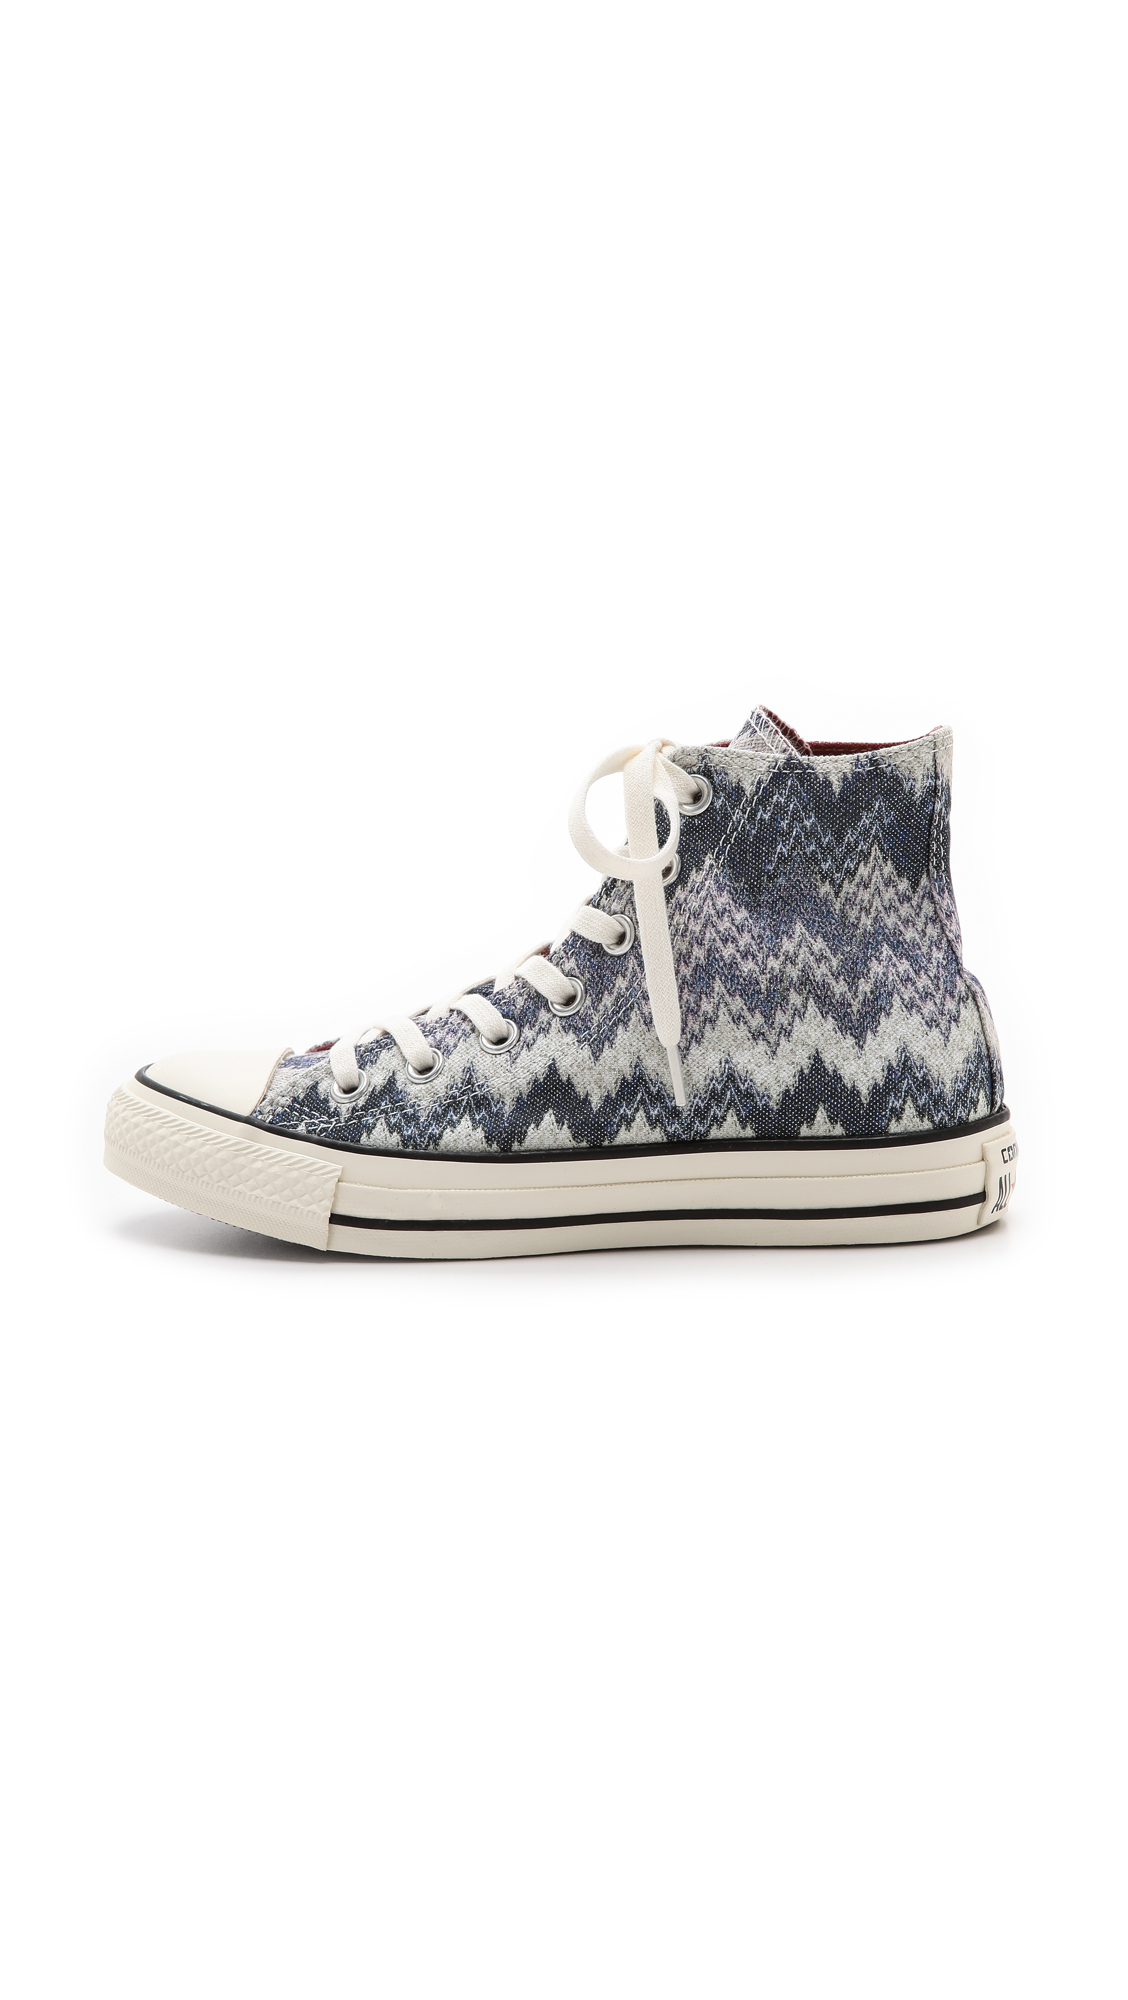 68c225a24402 Gallery. Previously sold at  Shopbop · Women s Converse Chuck Taylor ...